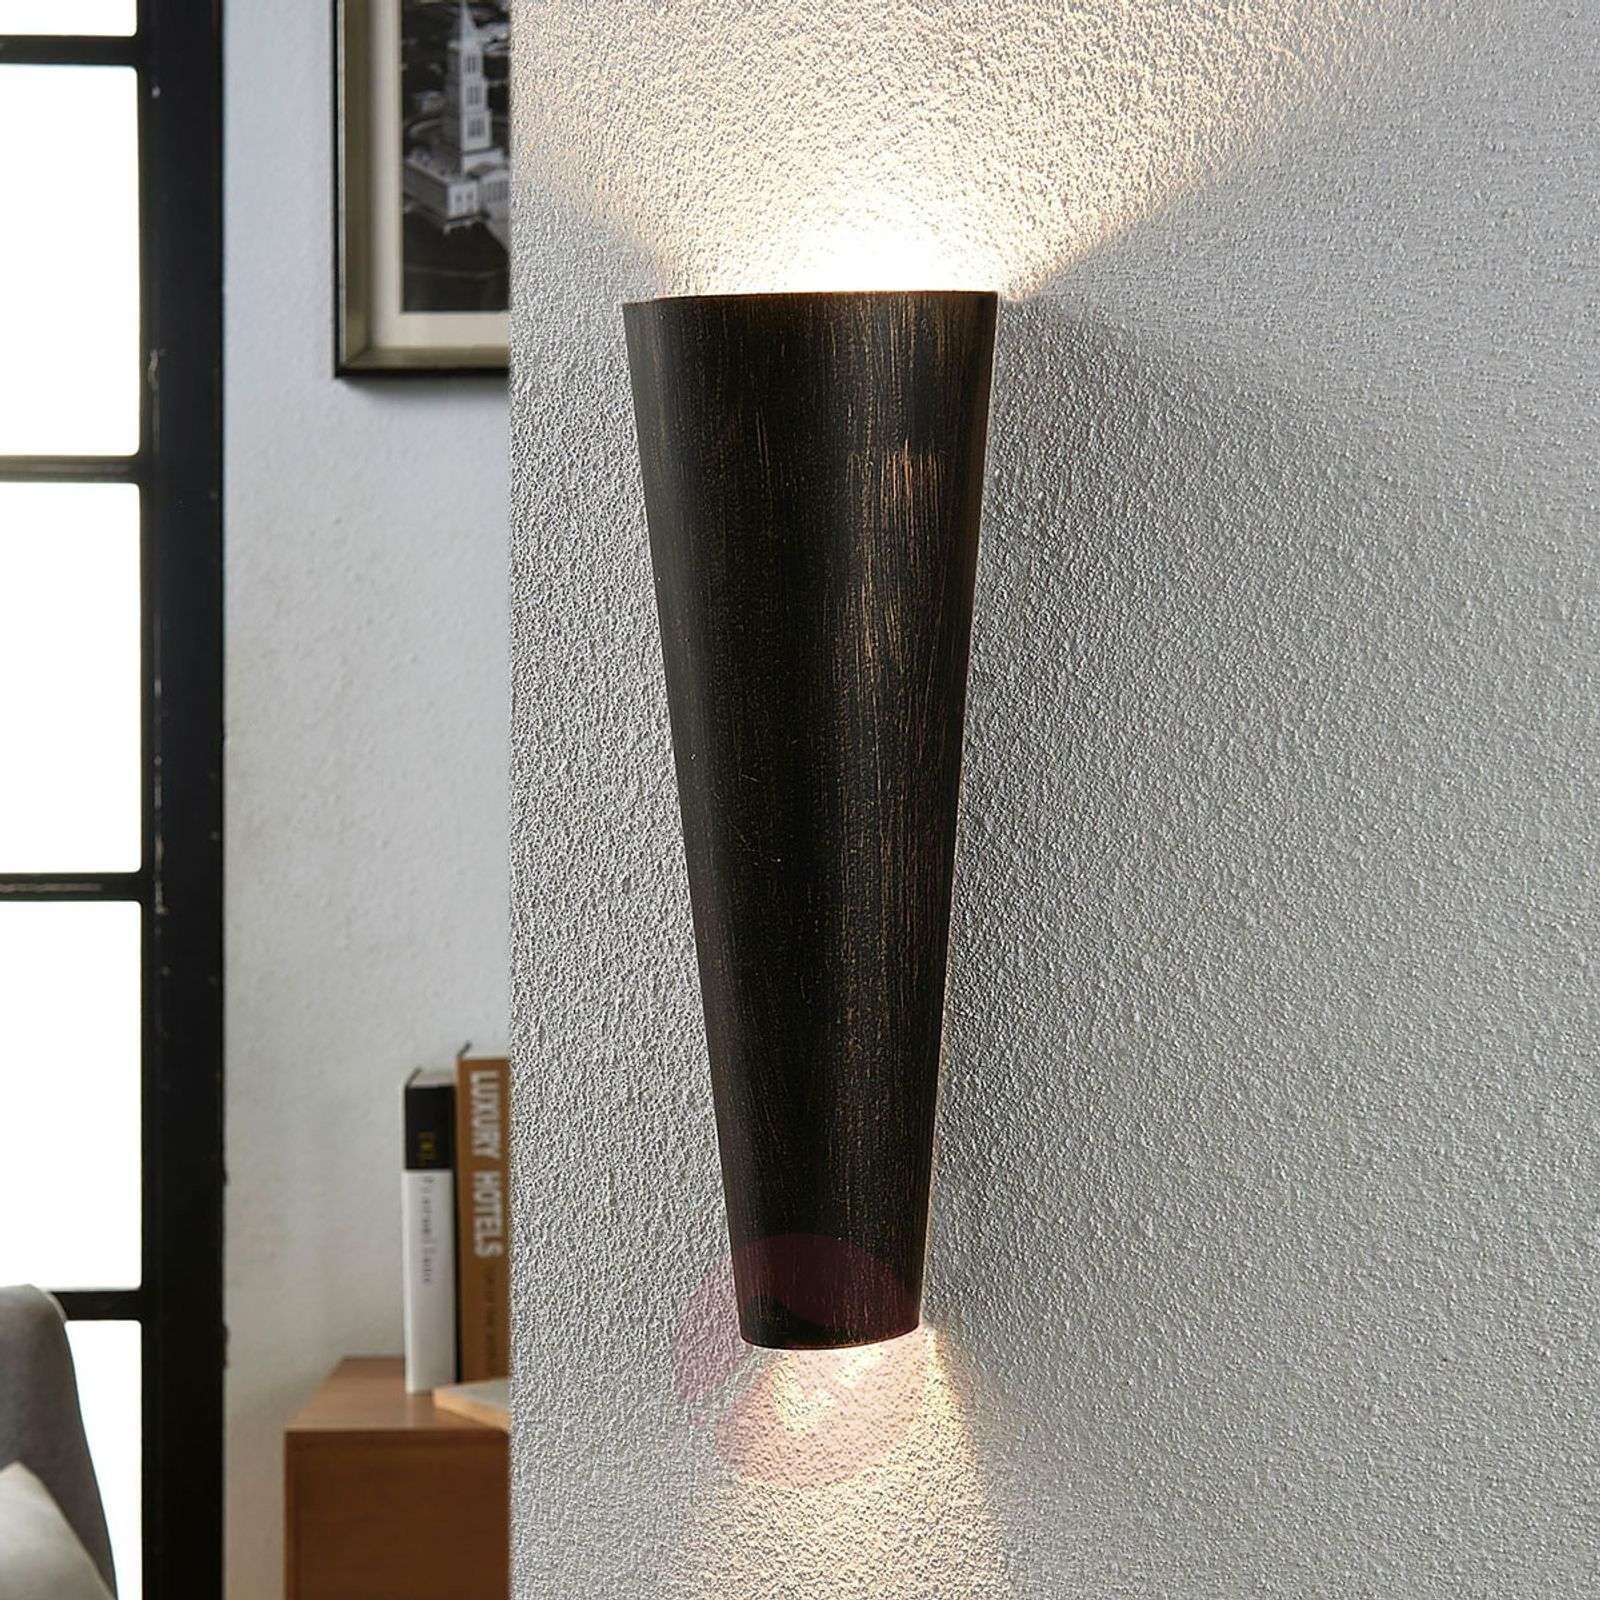 Black gold wall light Conan, indirect light-9620935-03